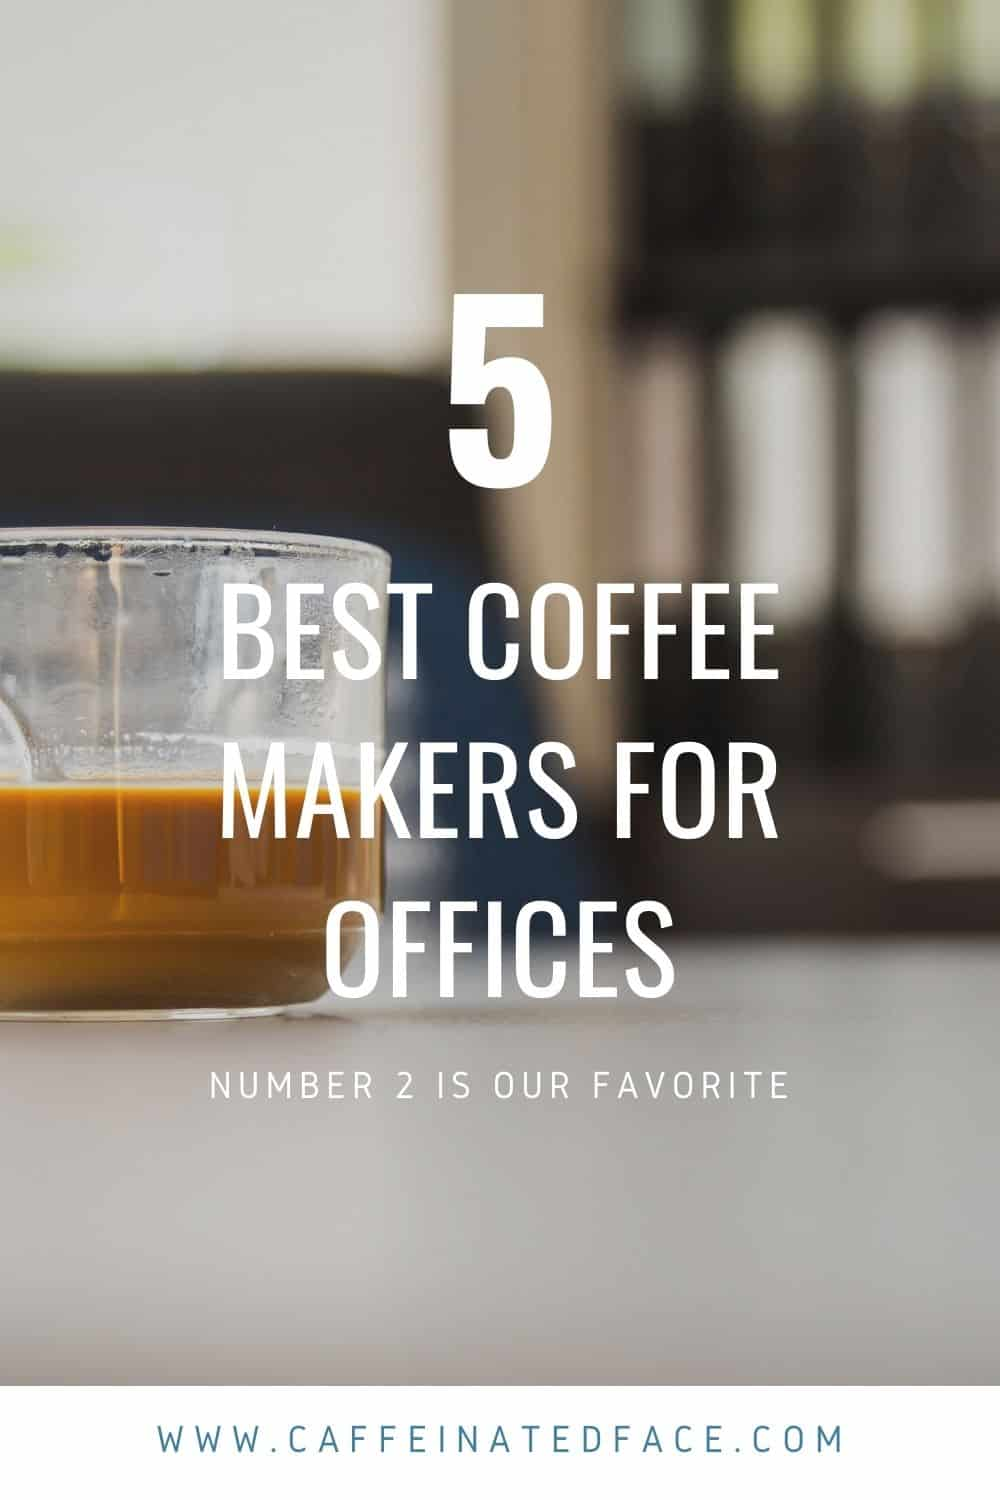 BEST COFFEE MAKERS FOR OFFICES (1)